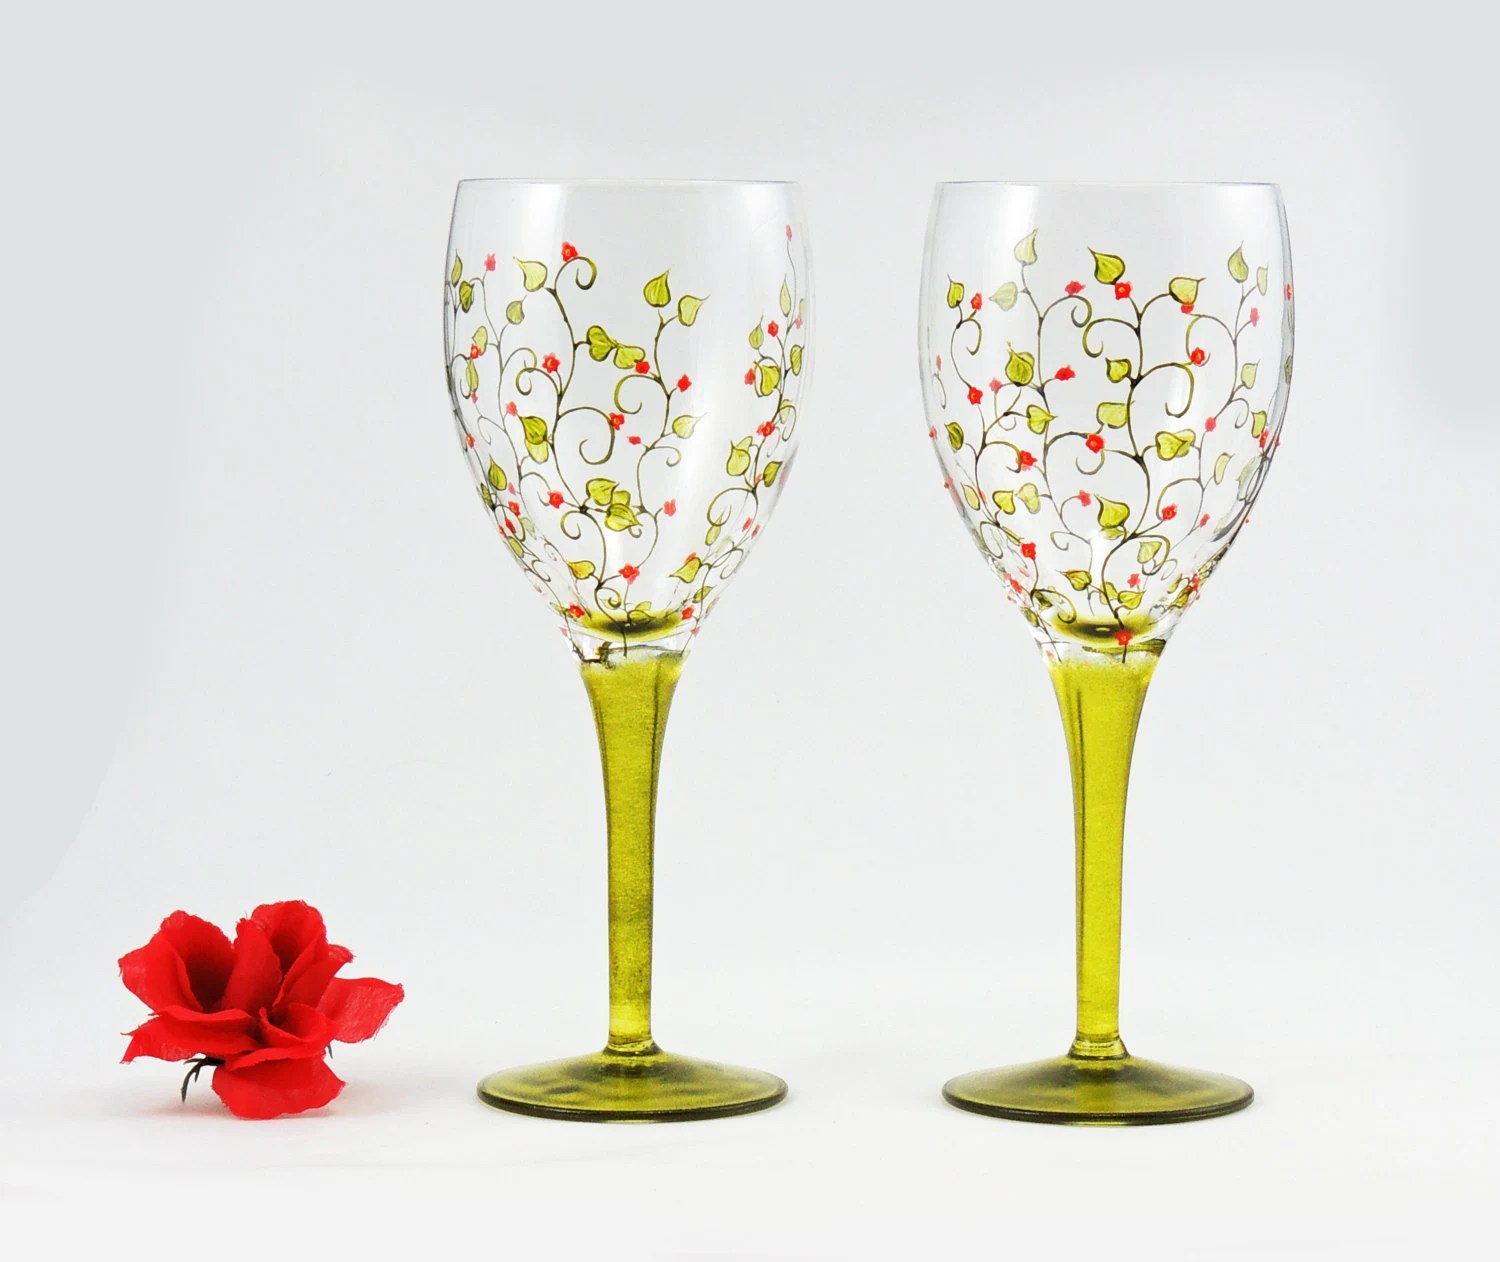 High Quality Wine Glasses Hand Painted Glasses Set Of 2 High Quality White Wine